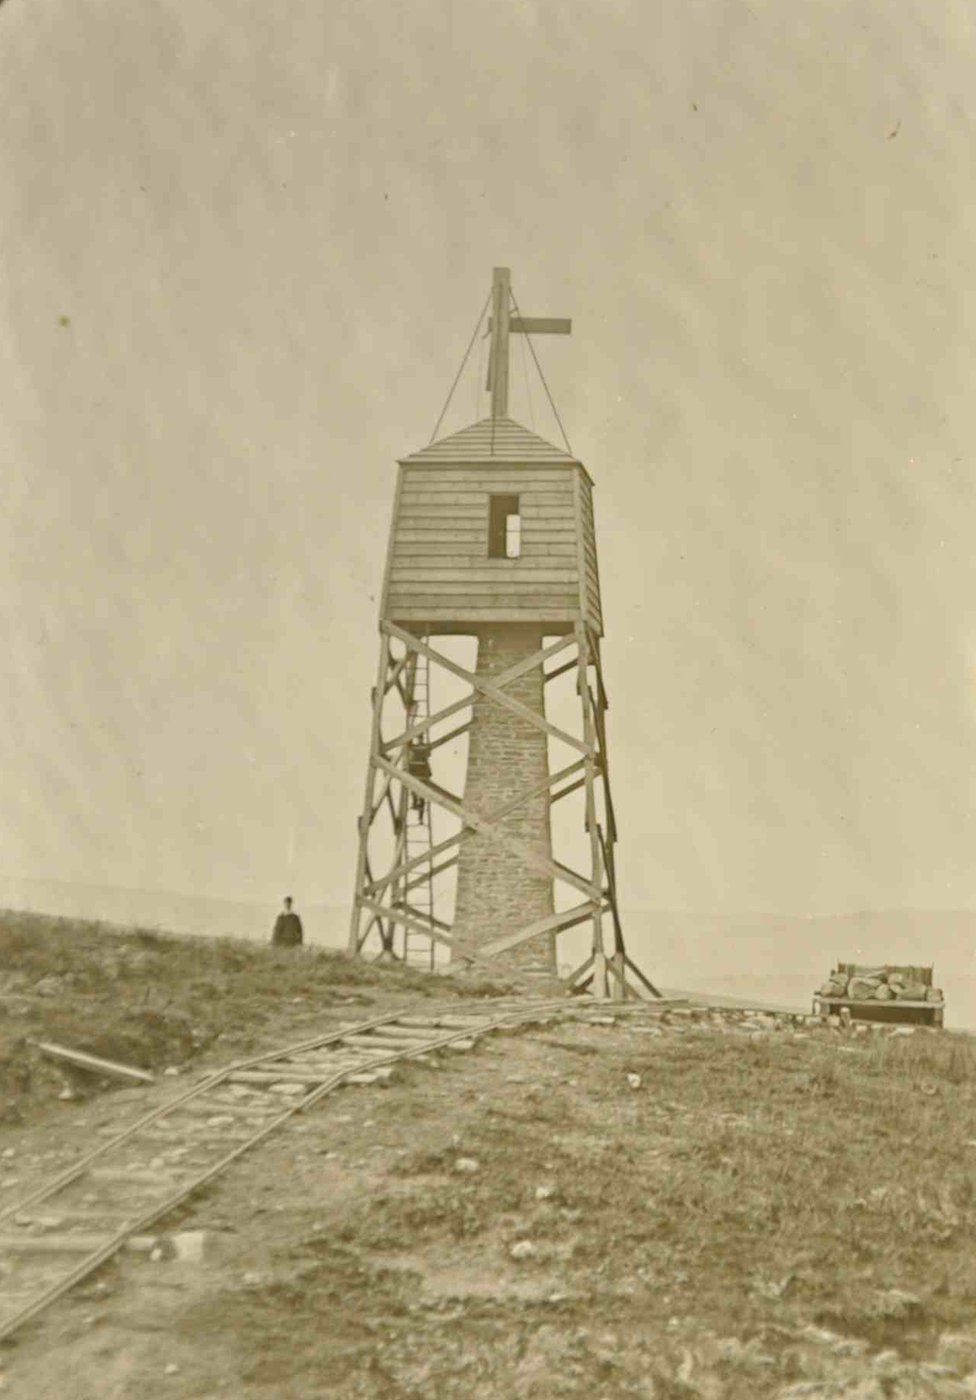 siteline worker showing one of many observatories which were constructed along the route of the aqueduct which were up to about 60ft high and were used by workers operating theodolite-like devices to measure and check the route of the aqueduct